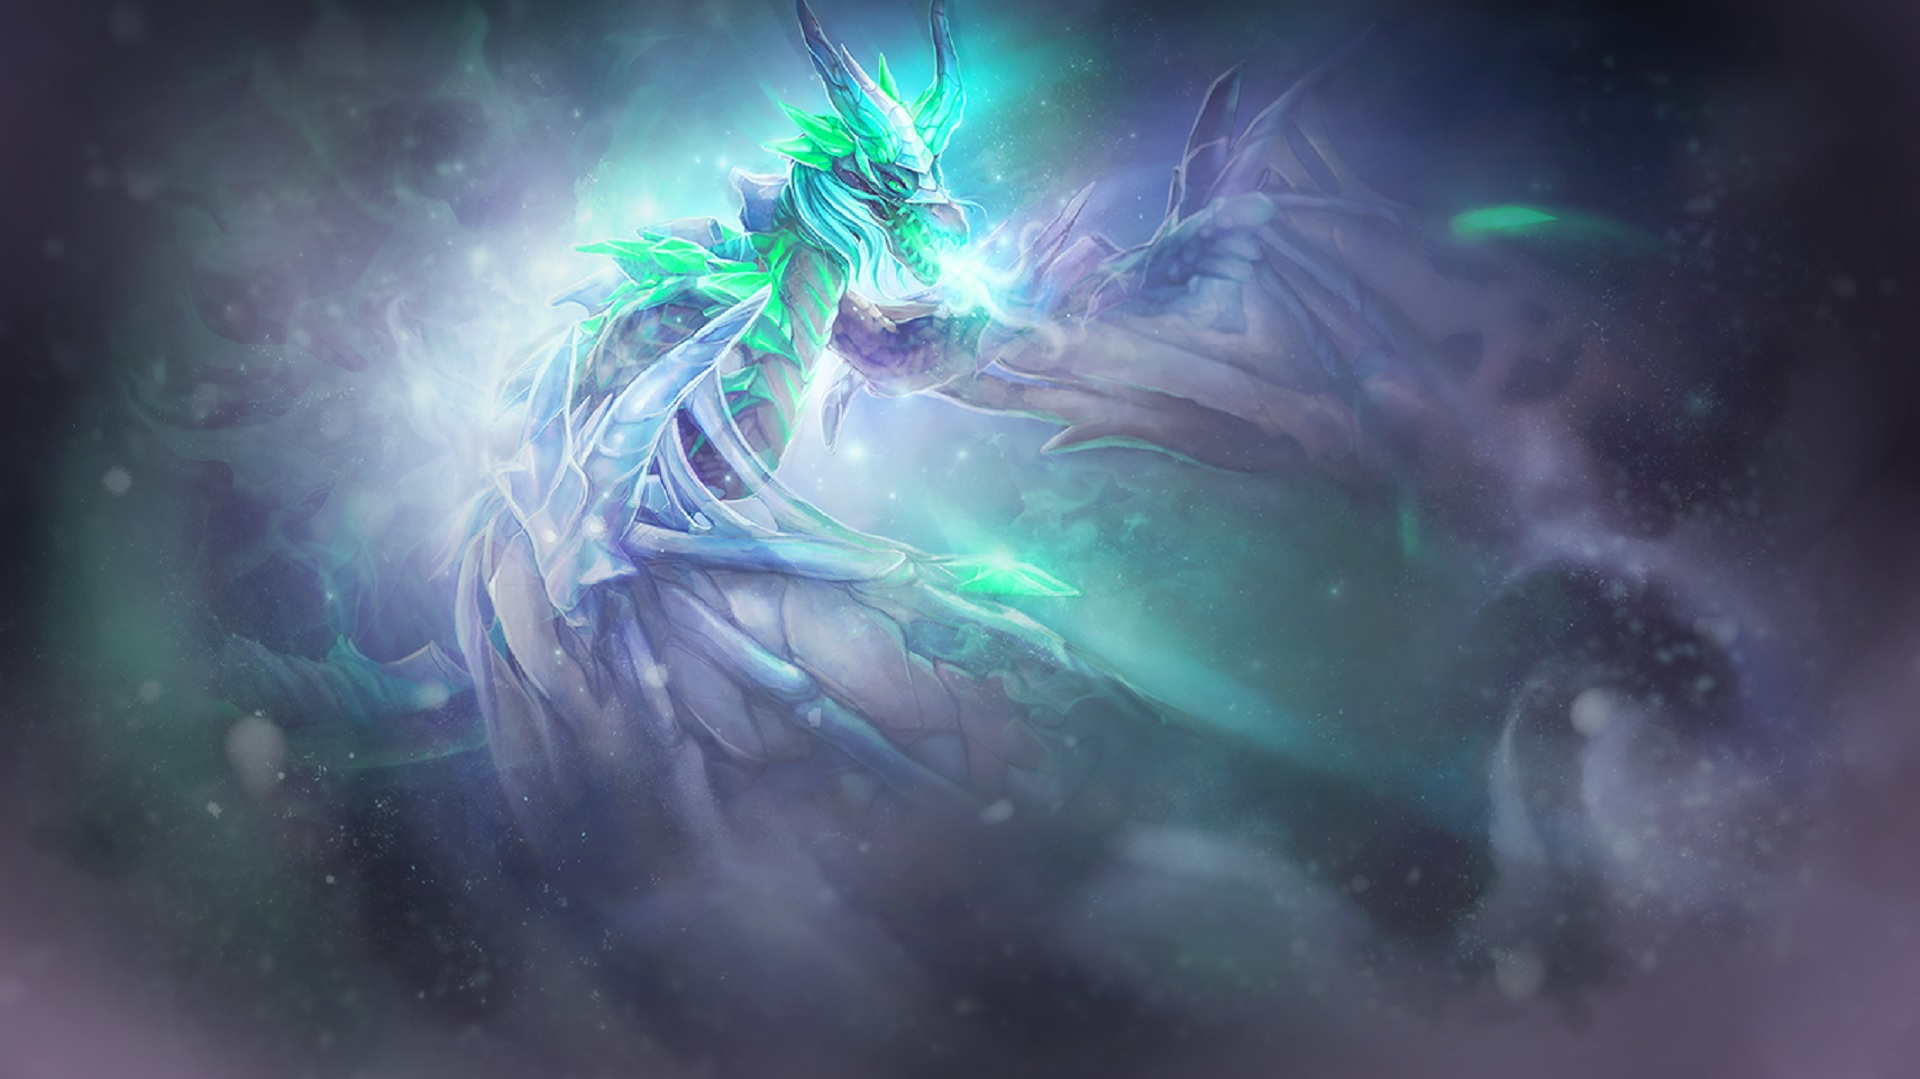 Winter Wyvern Wallpapers Dota 2